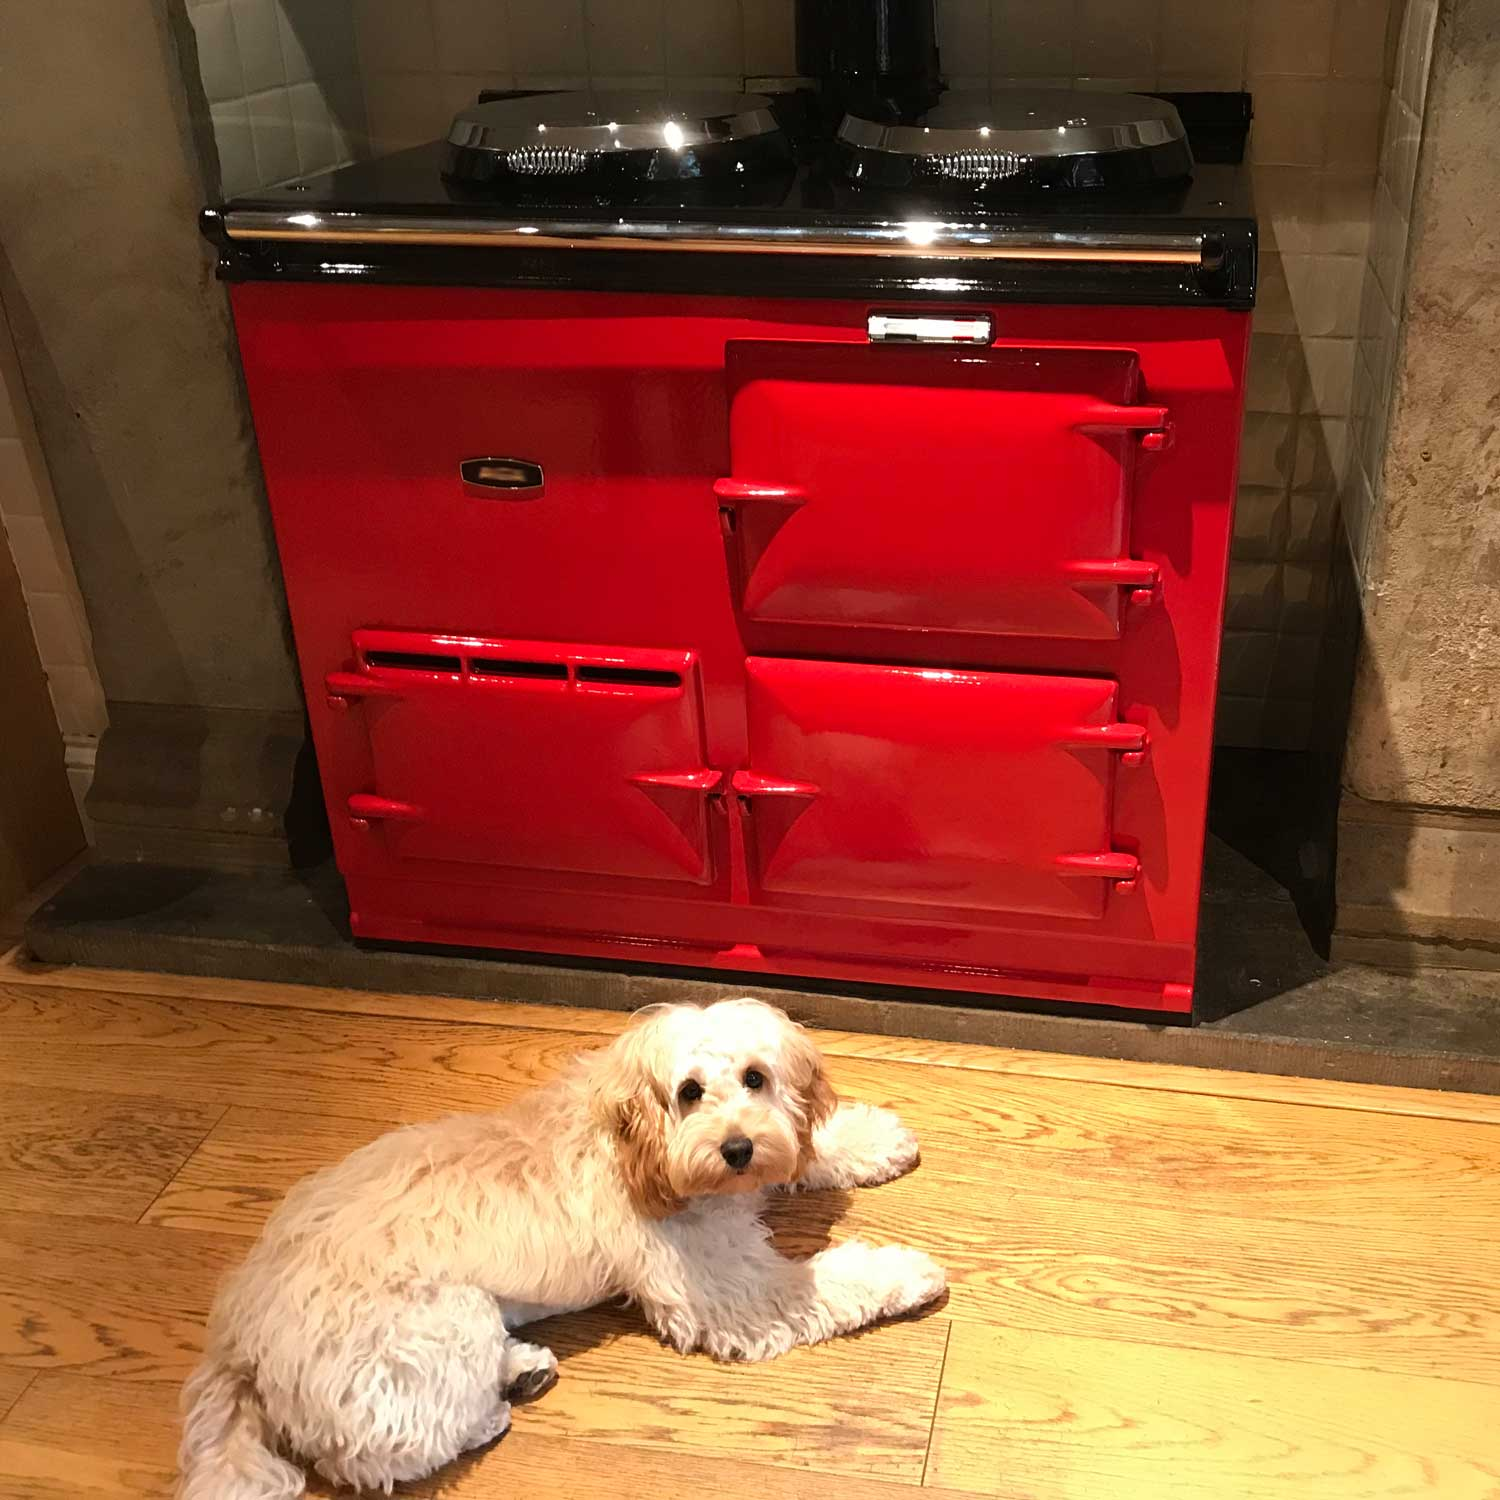 Red Aga re-enamelled